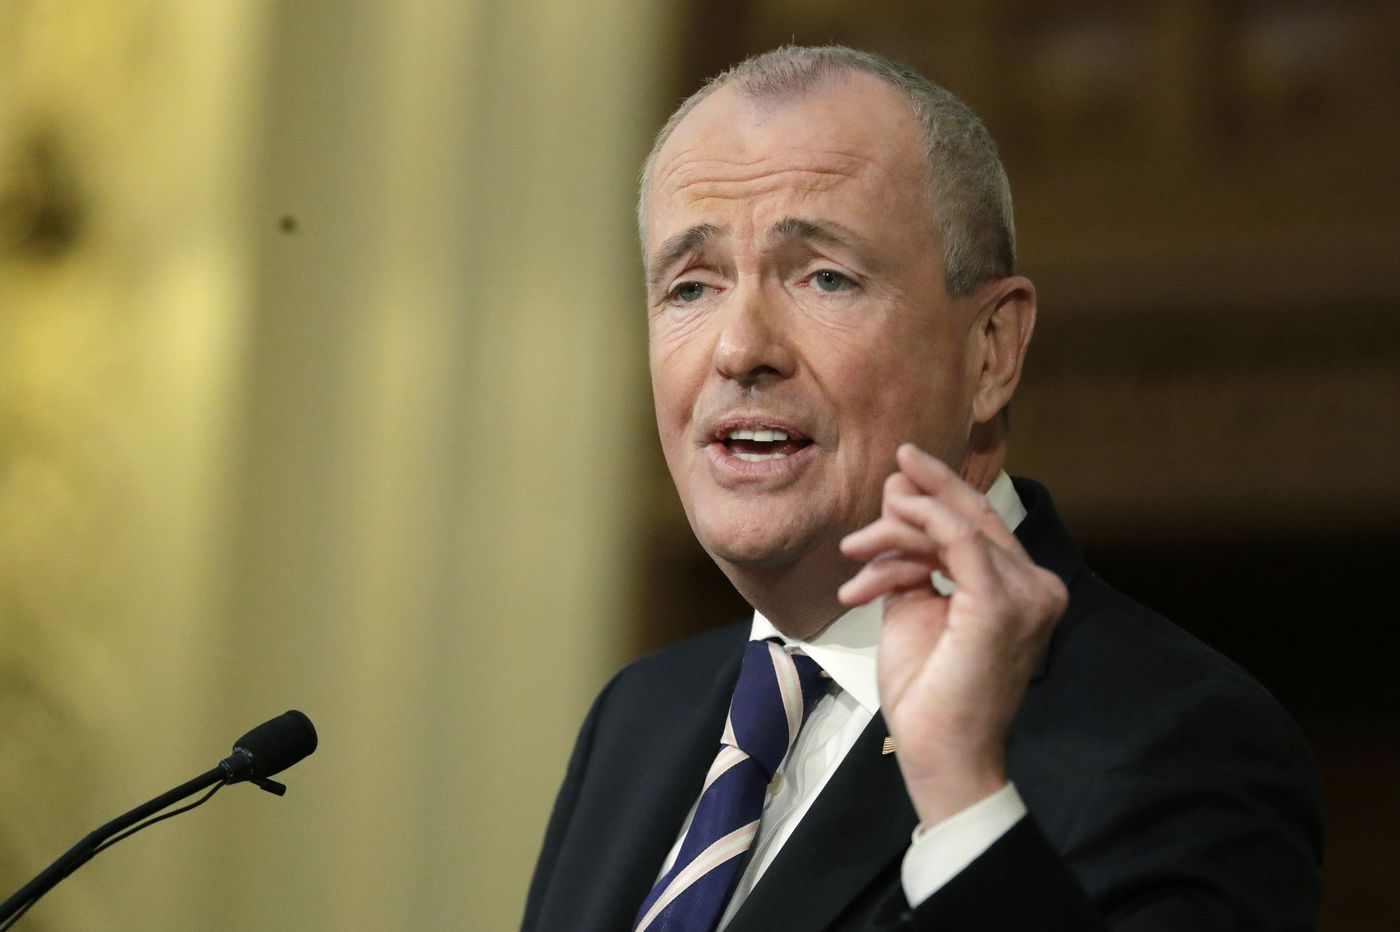 N.J. Gov. Murphy enacts new rules for sexual misconduct investigations